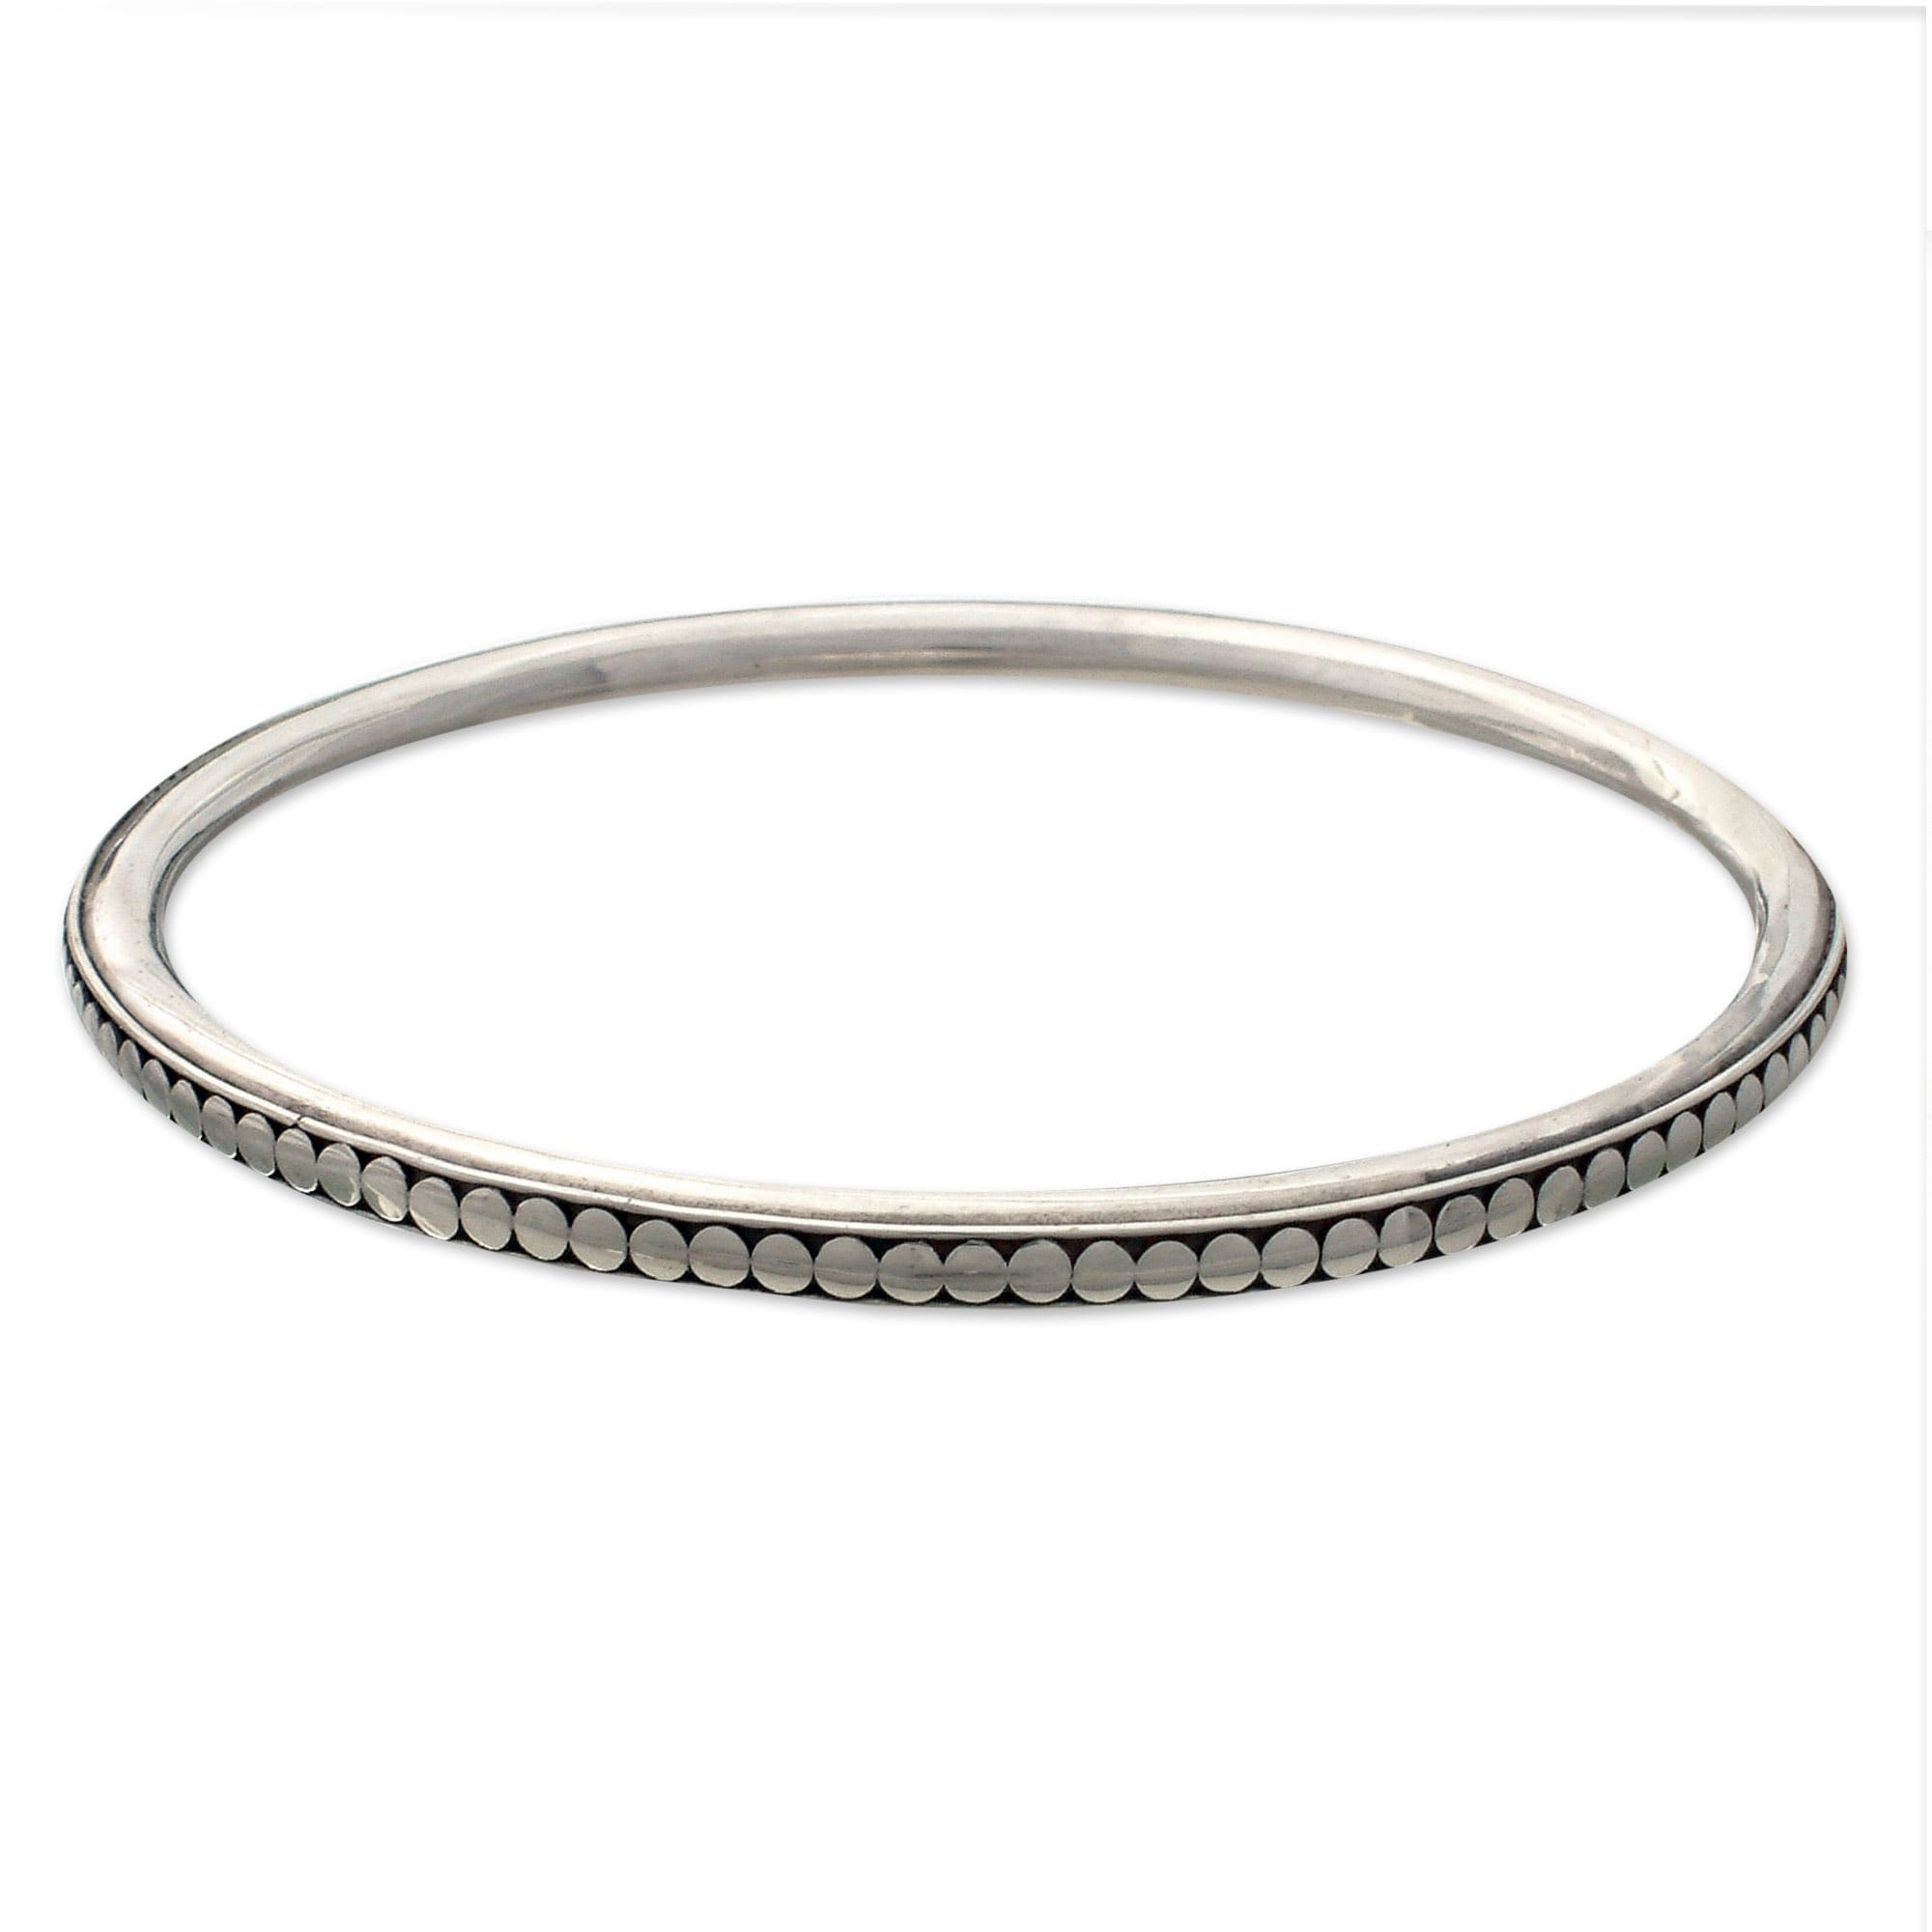 bangle sure the our of will silver quality bangles crafted you plain bracelets fit to knots solid genuine bracelet love celtic sterling are pin knot exceptional